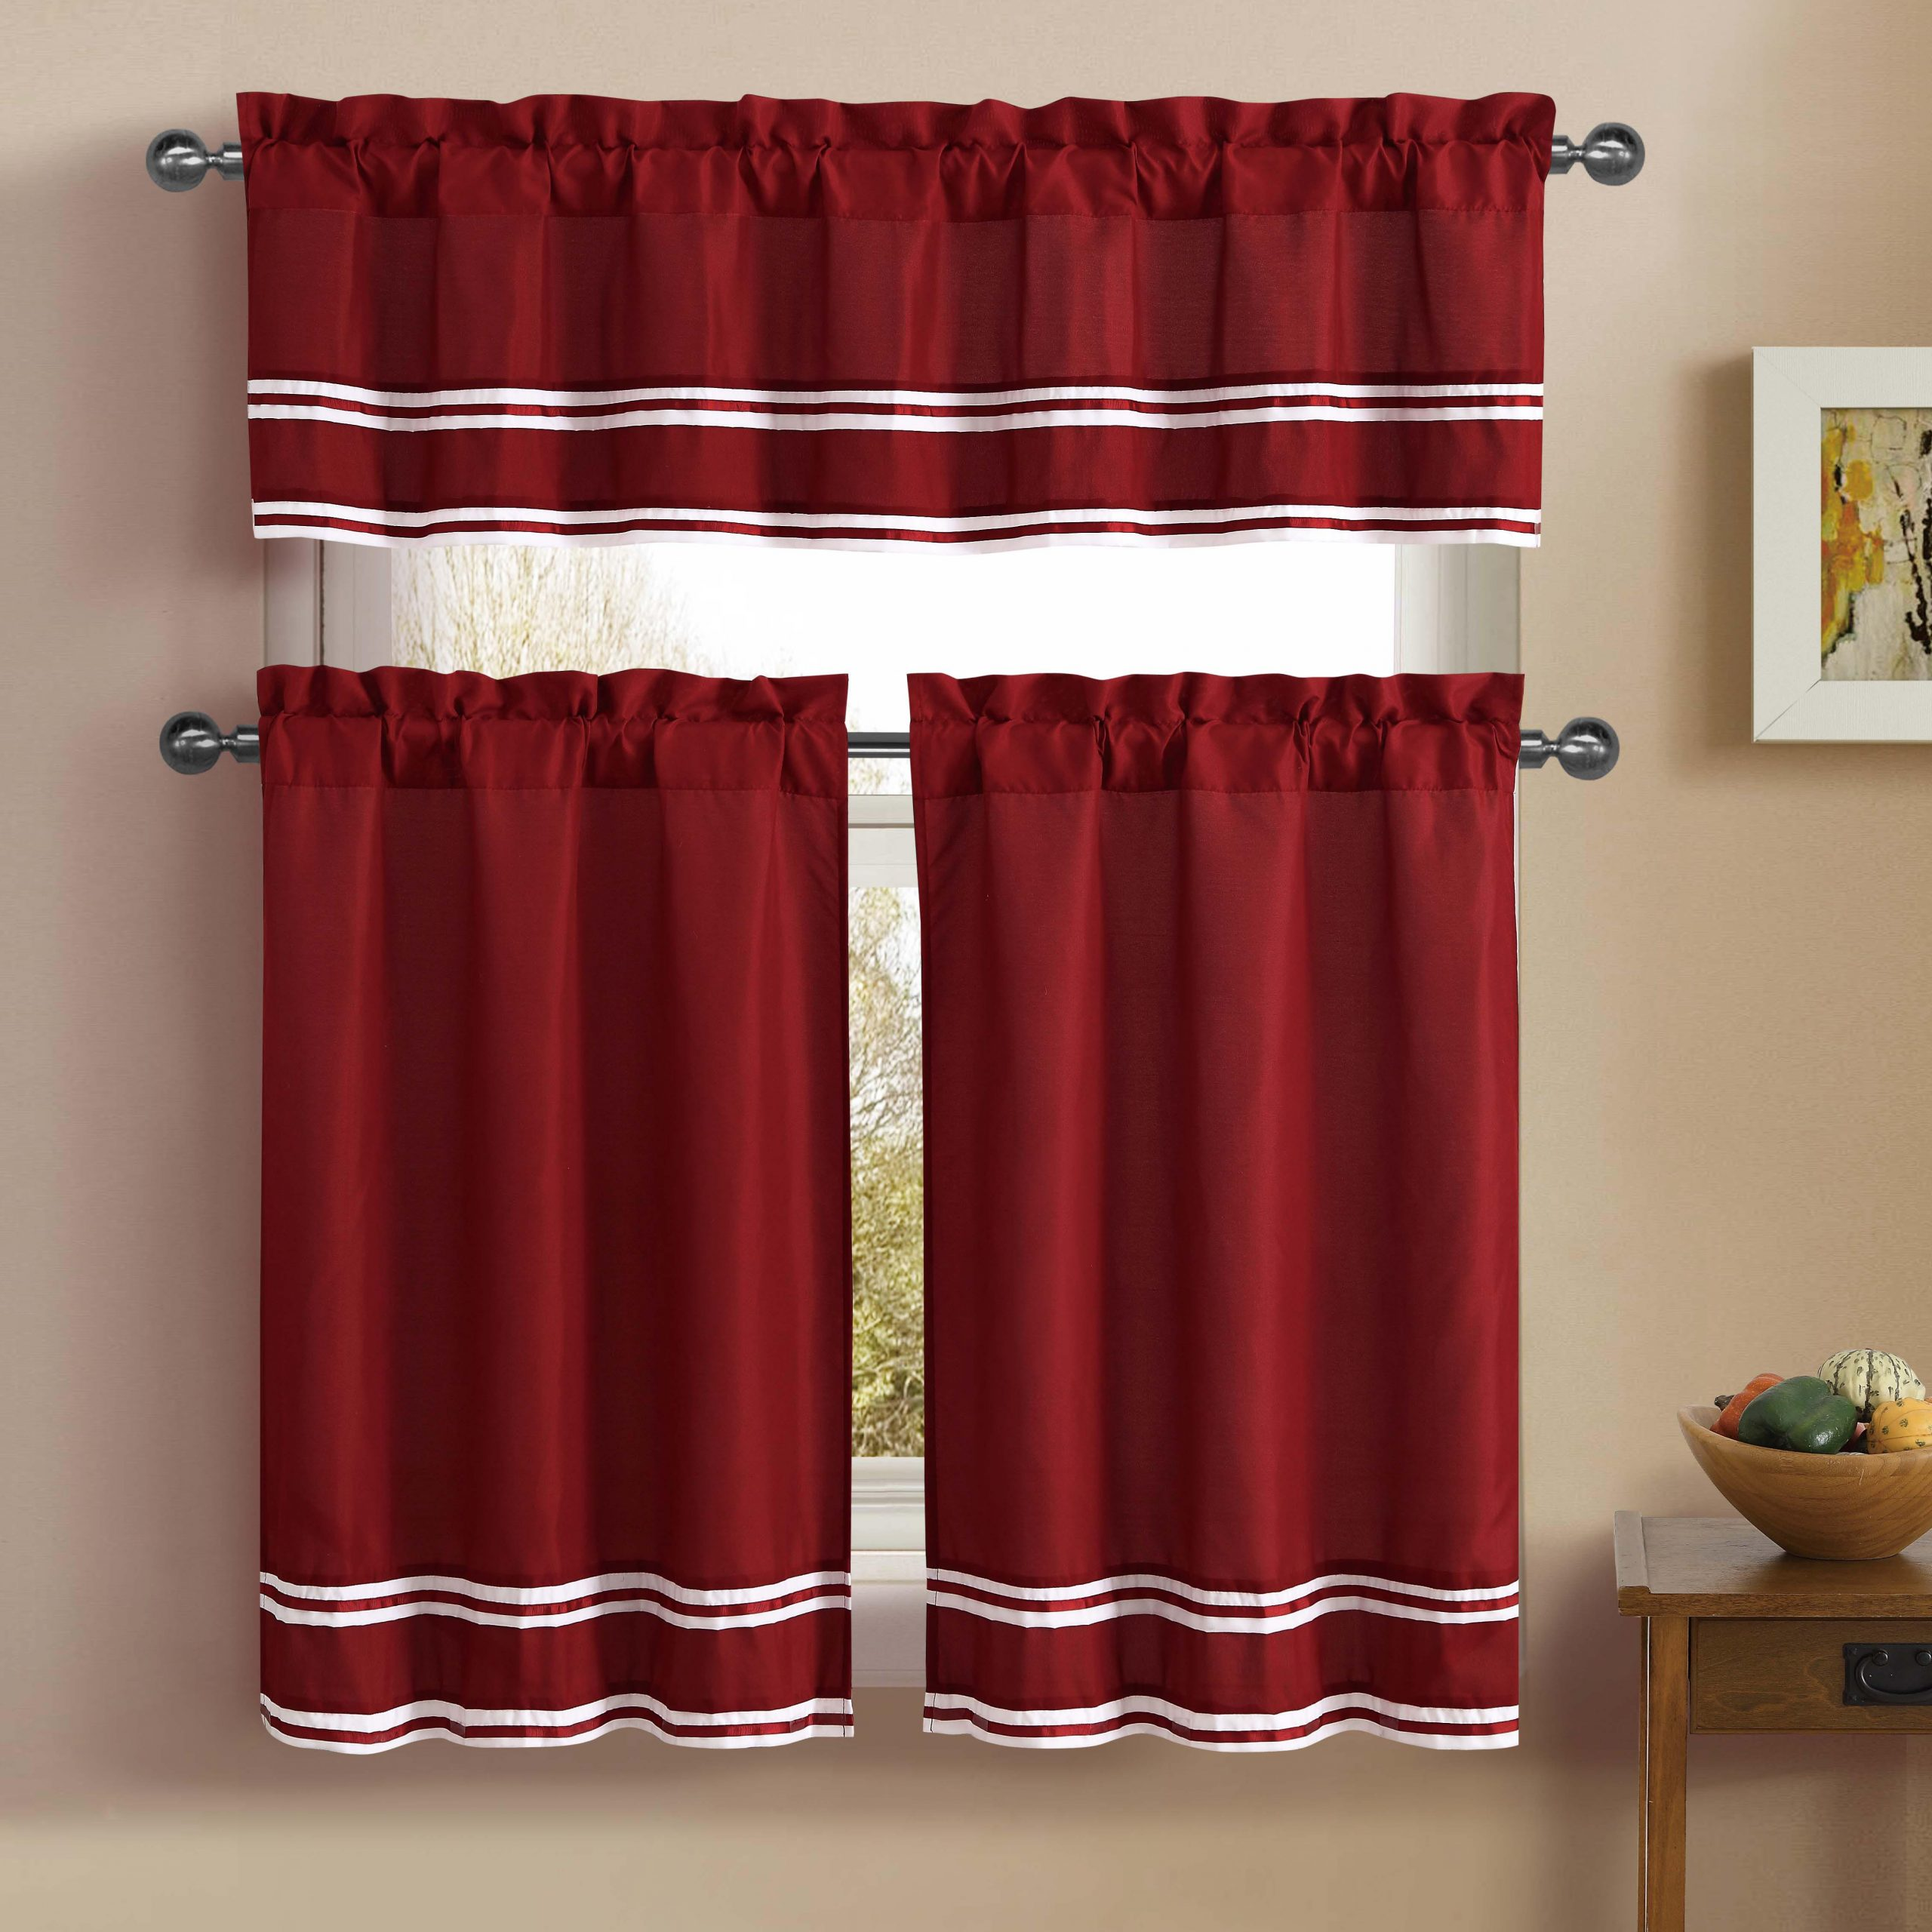 Most Current Pintuck Kitchen Window Tiers Intended For 3 Piece Kitchen Cafe/tiers Window Treatment Set: Pintuck Accent Stripes, 2 Tier Panels, 1 Valance (Red) (Gallery 14 of 20)